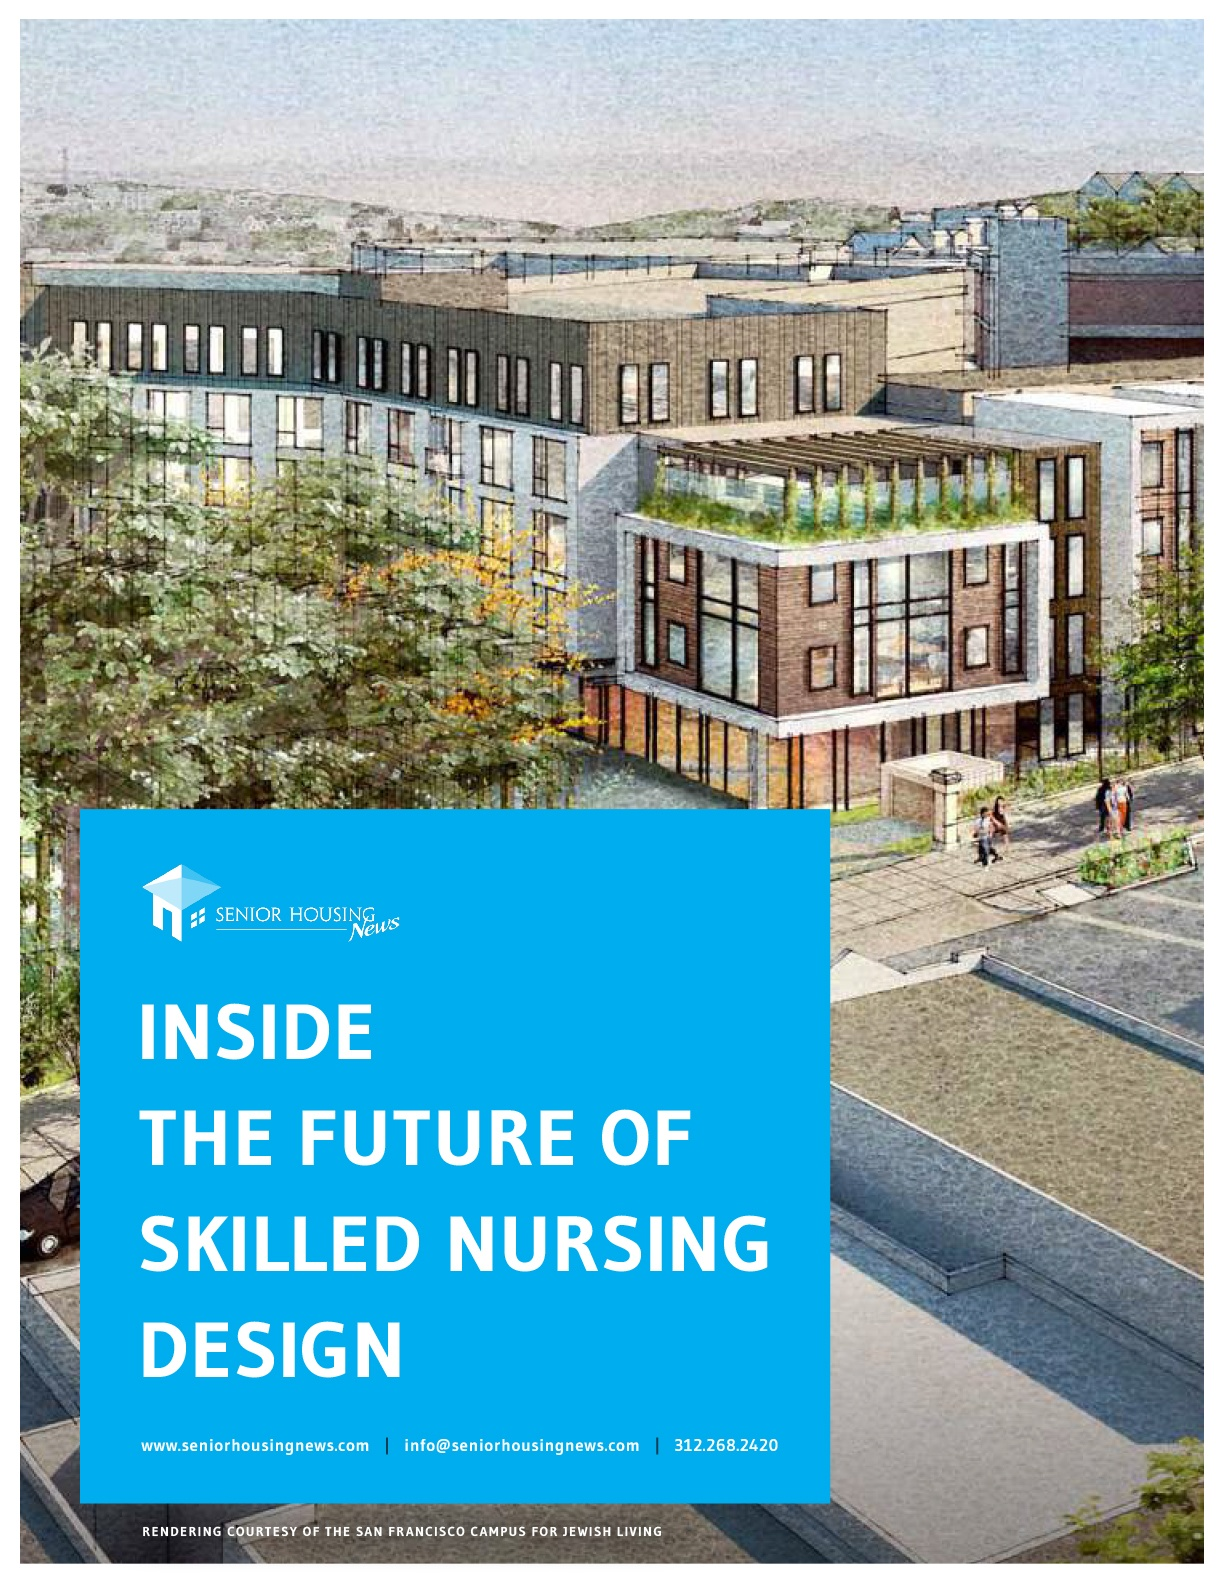 Inside The Future of Skilled Nursing Design